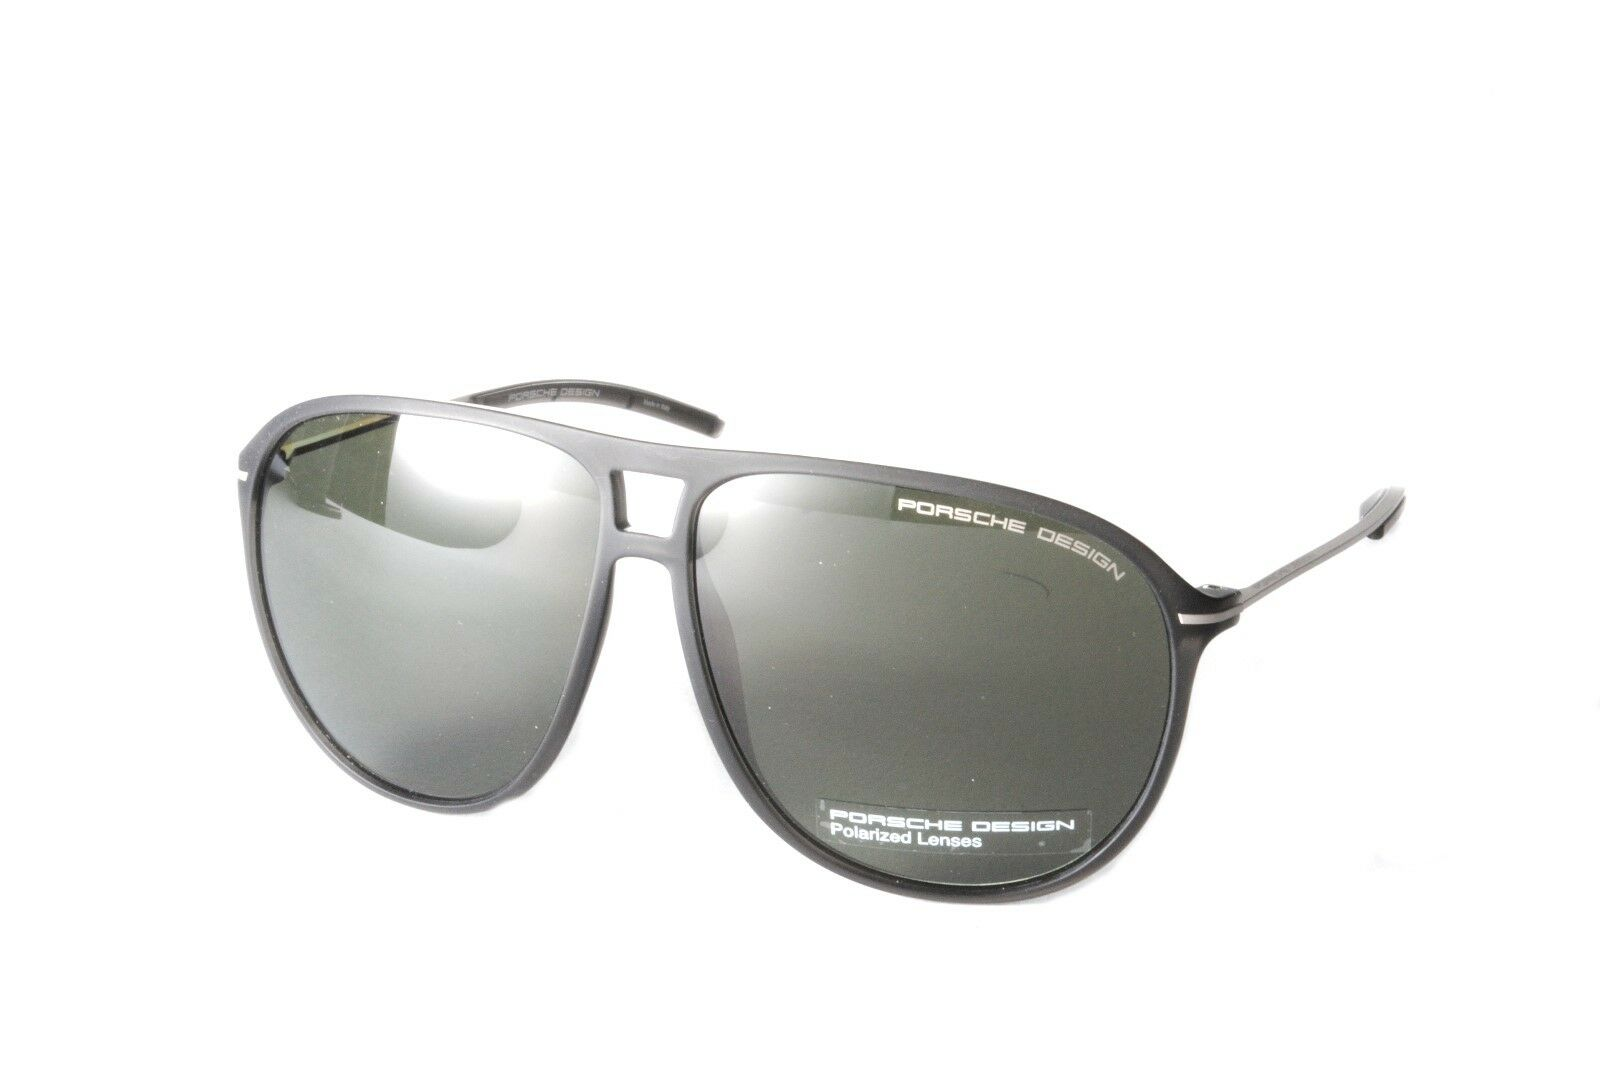 5635ce2f6b8 Porsche Design P8635A Matt Black Silver Green Polaried Sunglasses